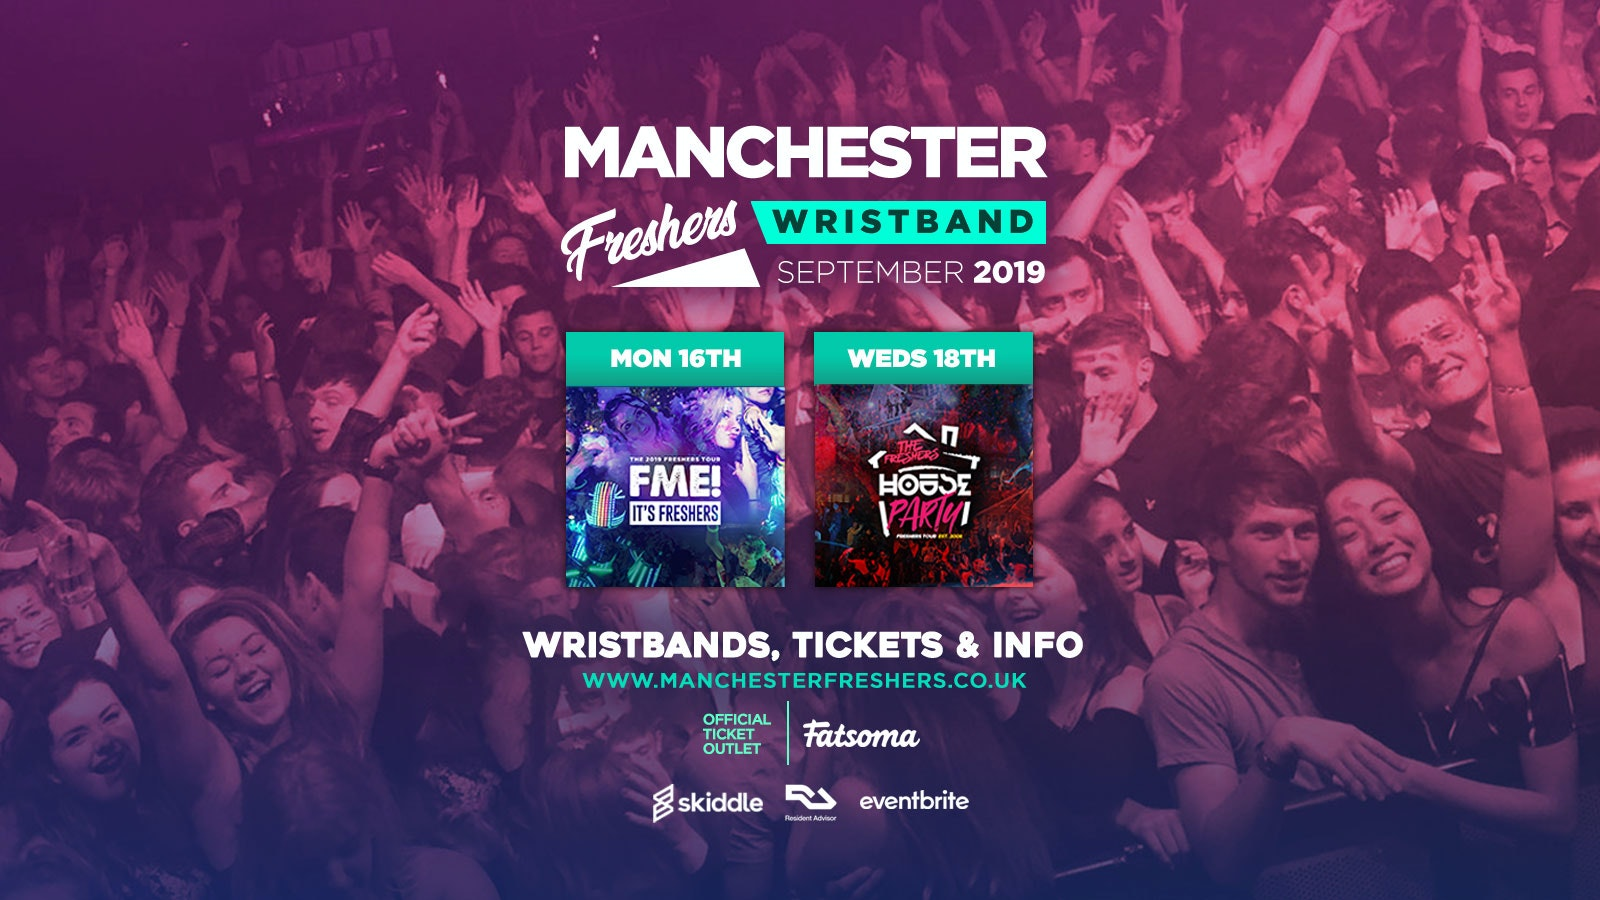 The Manchester Freshers Pack /// F*CK ME & House Party Double Ticket